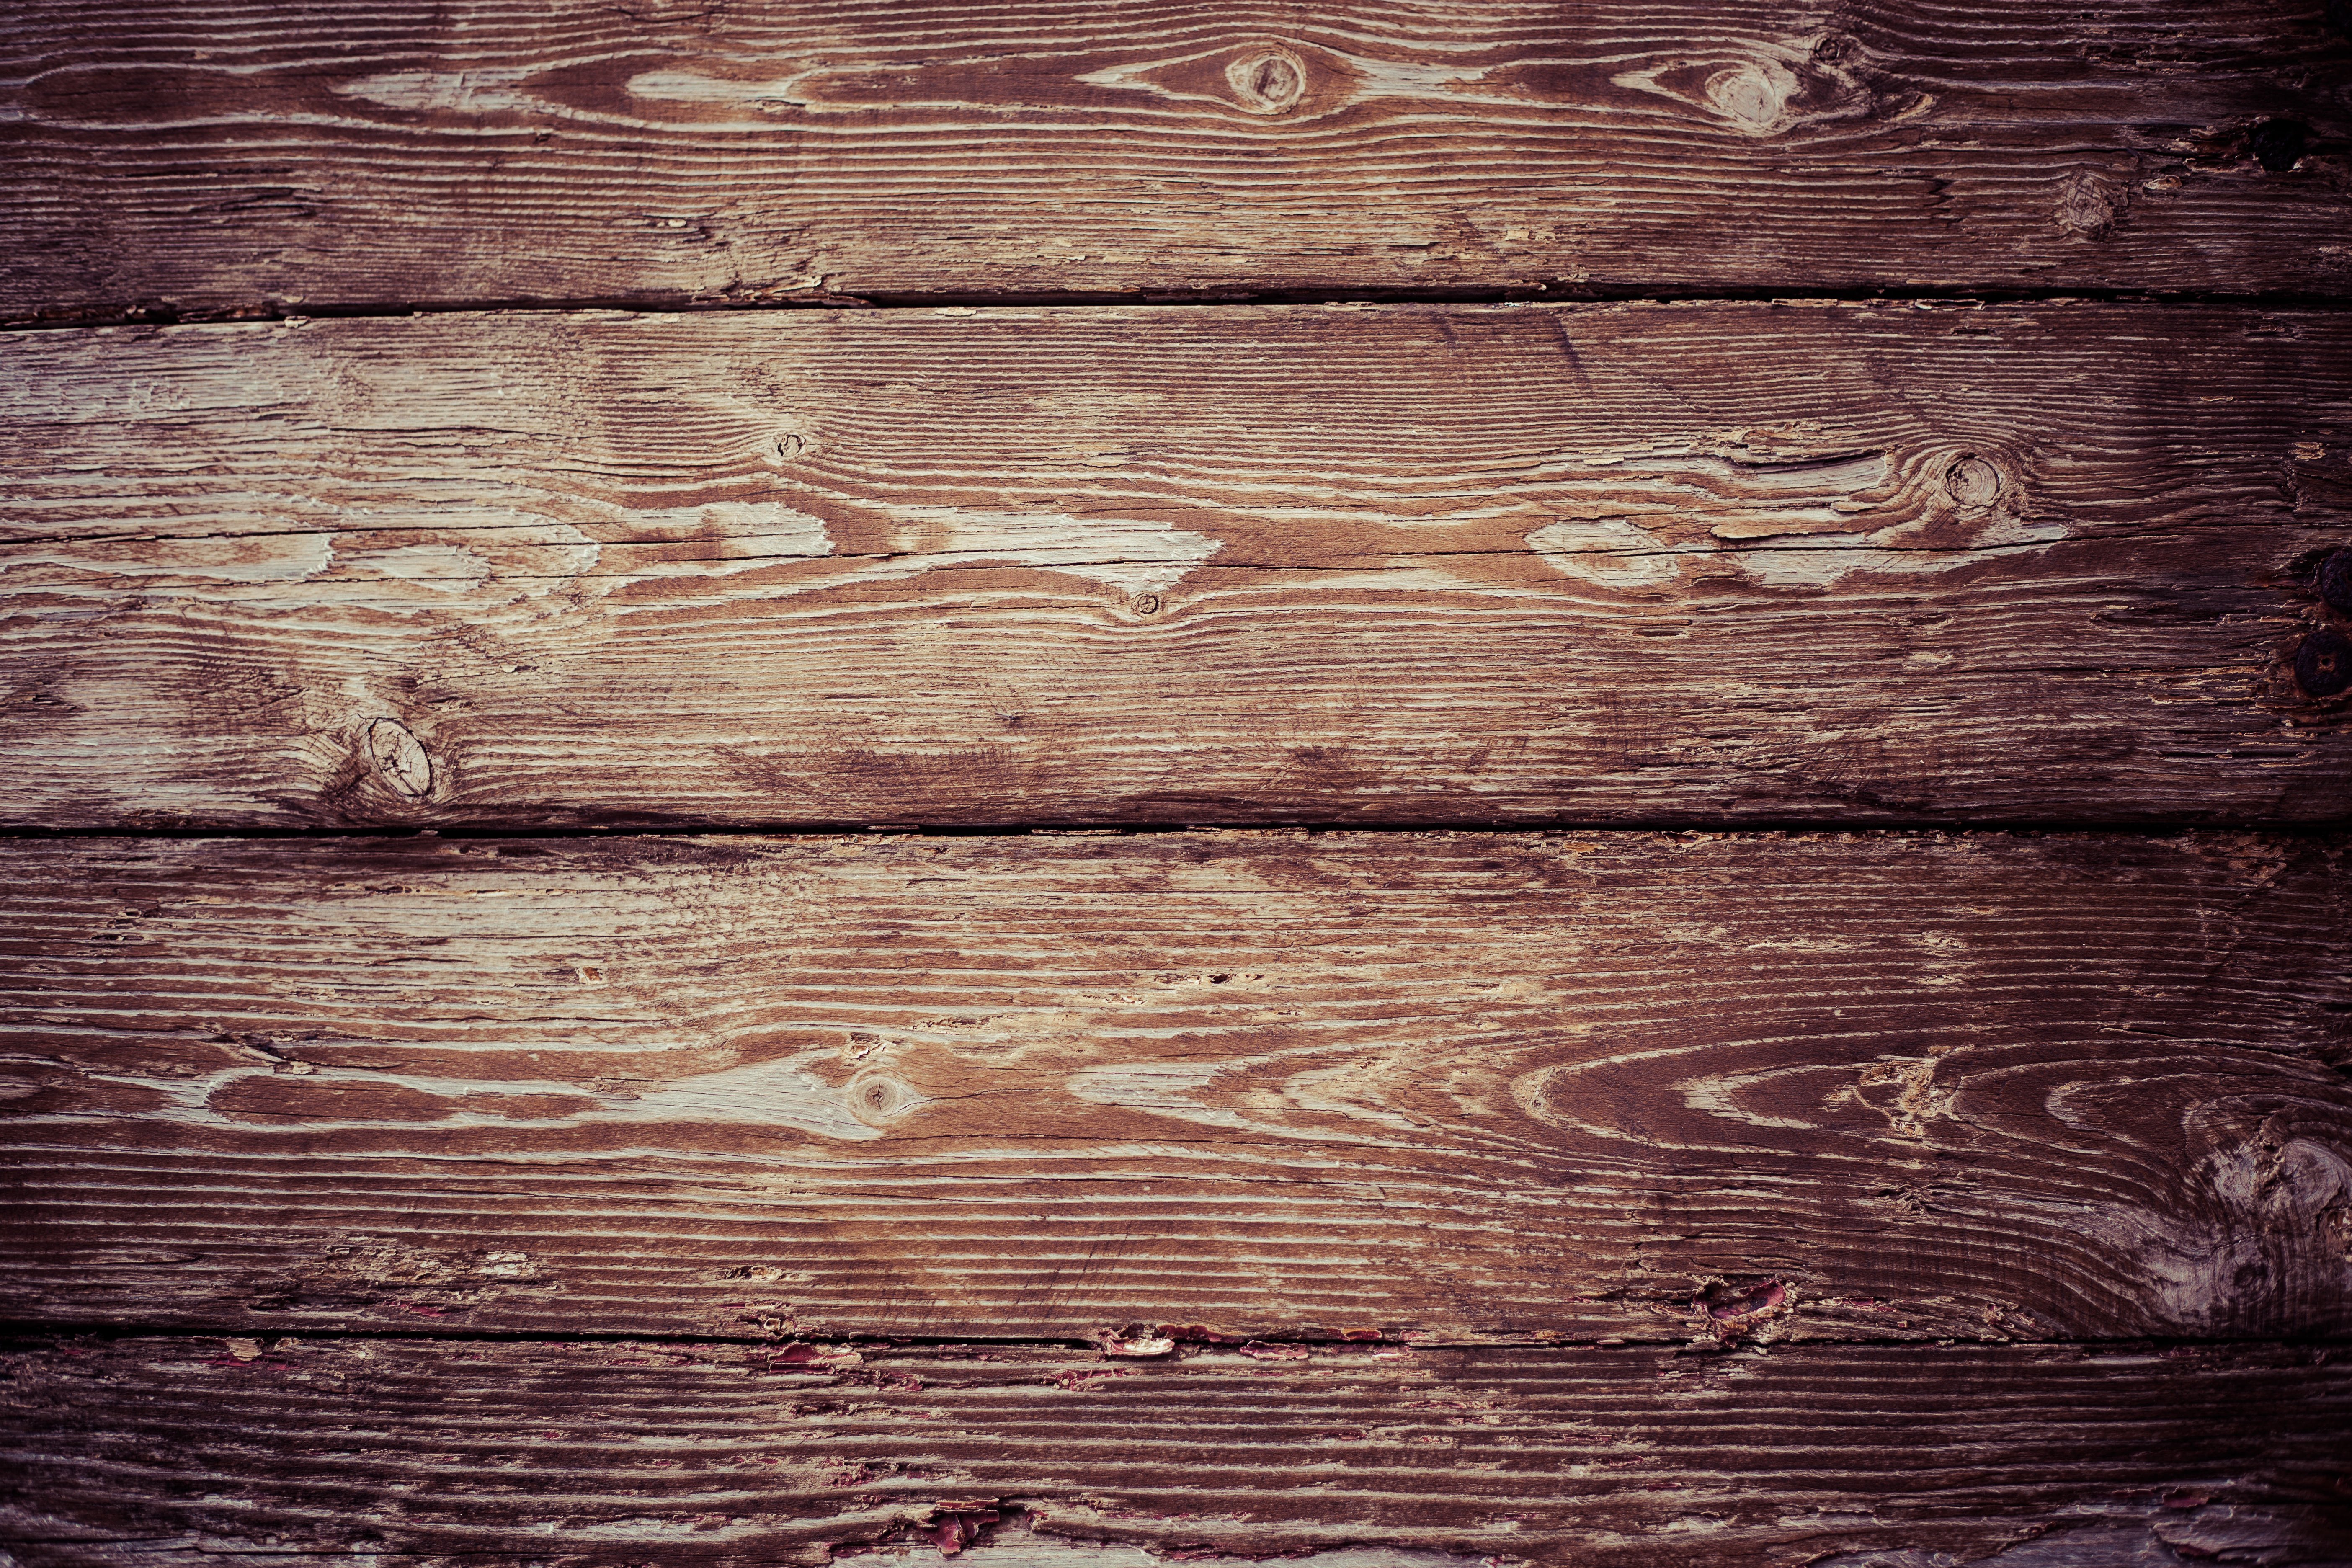 Free Photo: Wood Wall Texture   Wood, Wooden, Texture   Free ...